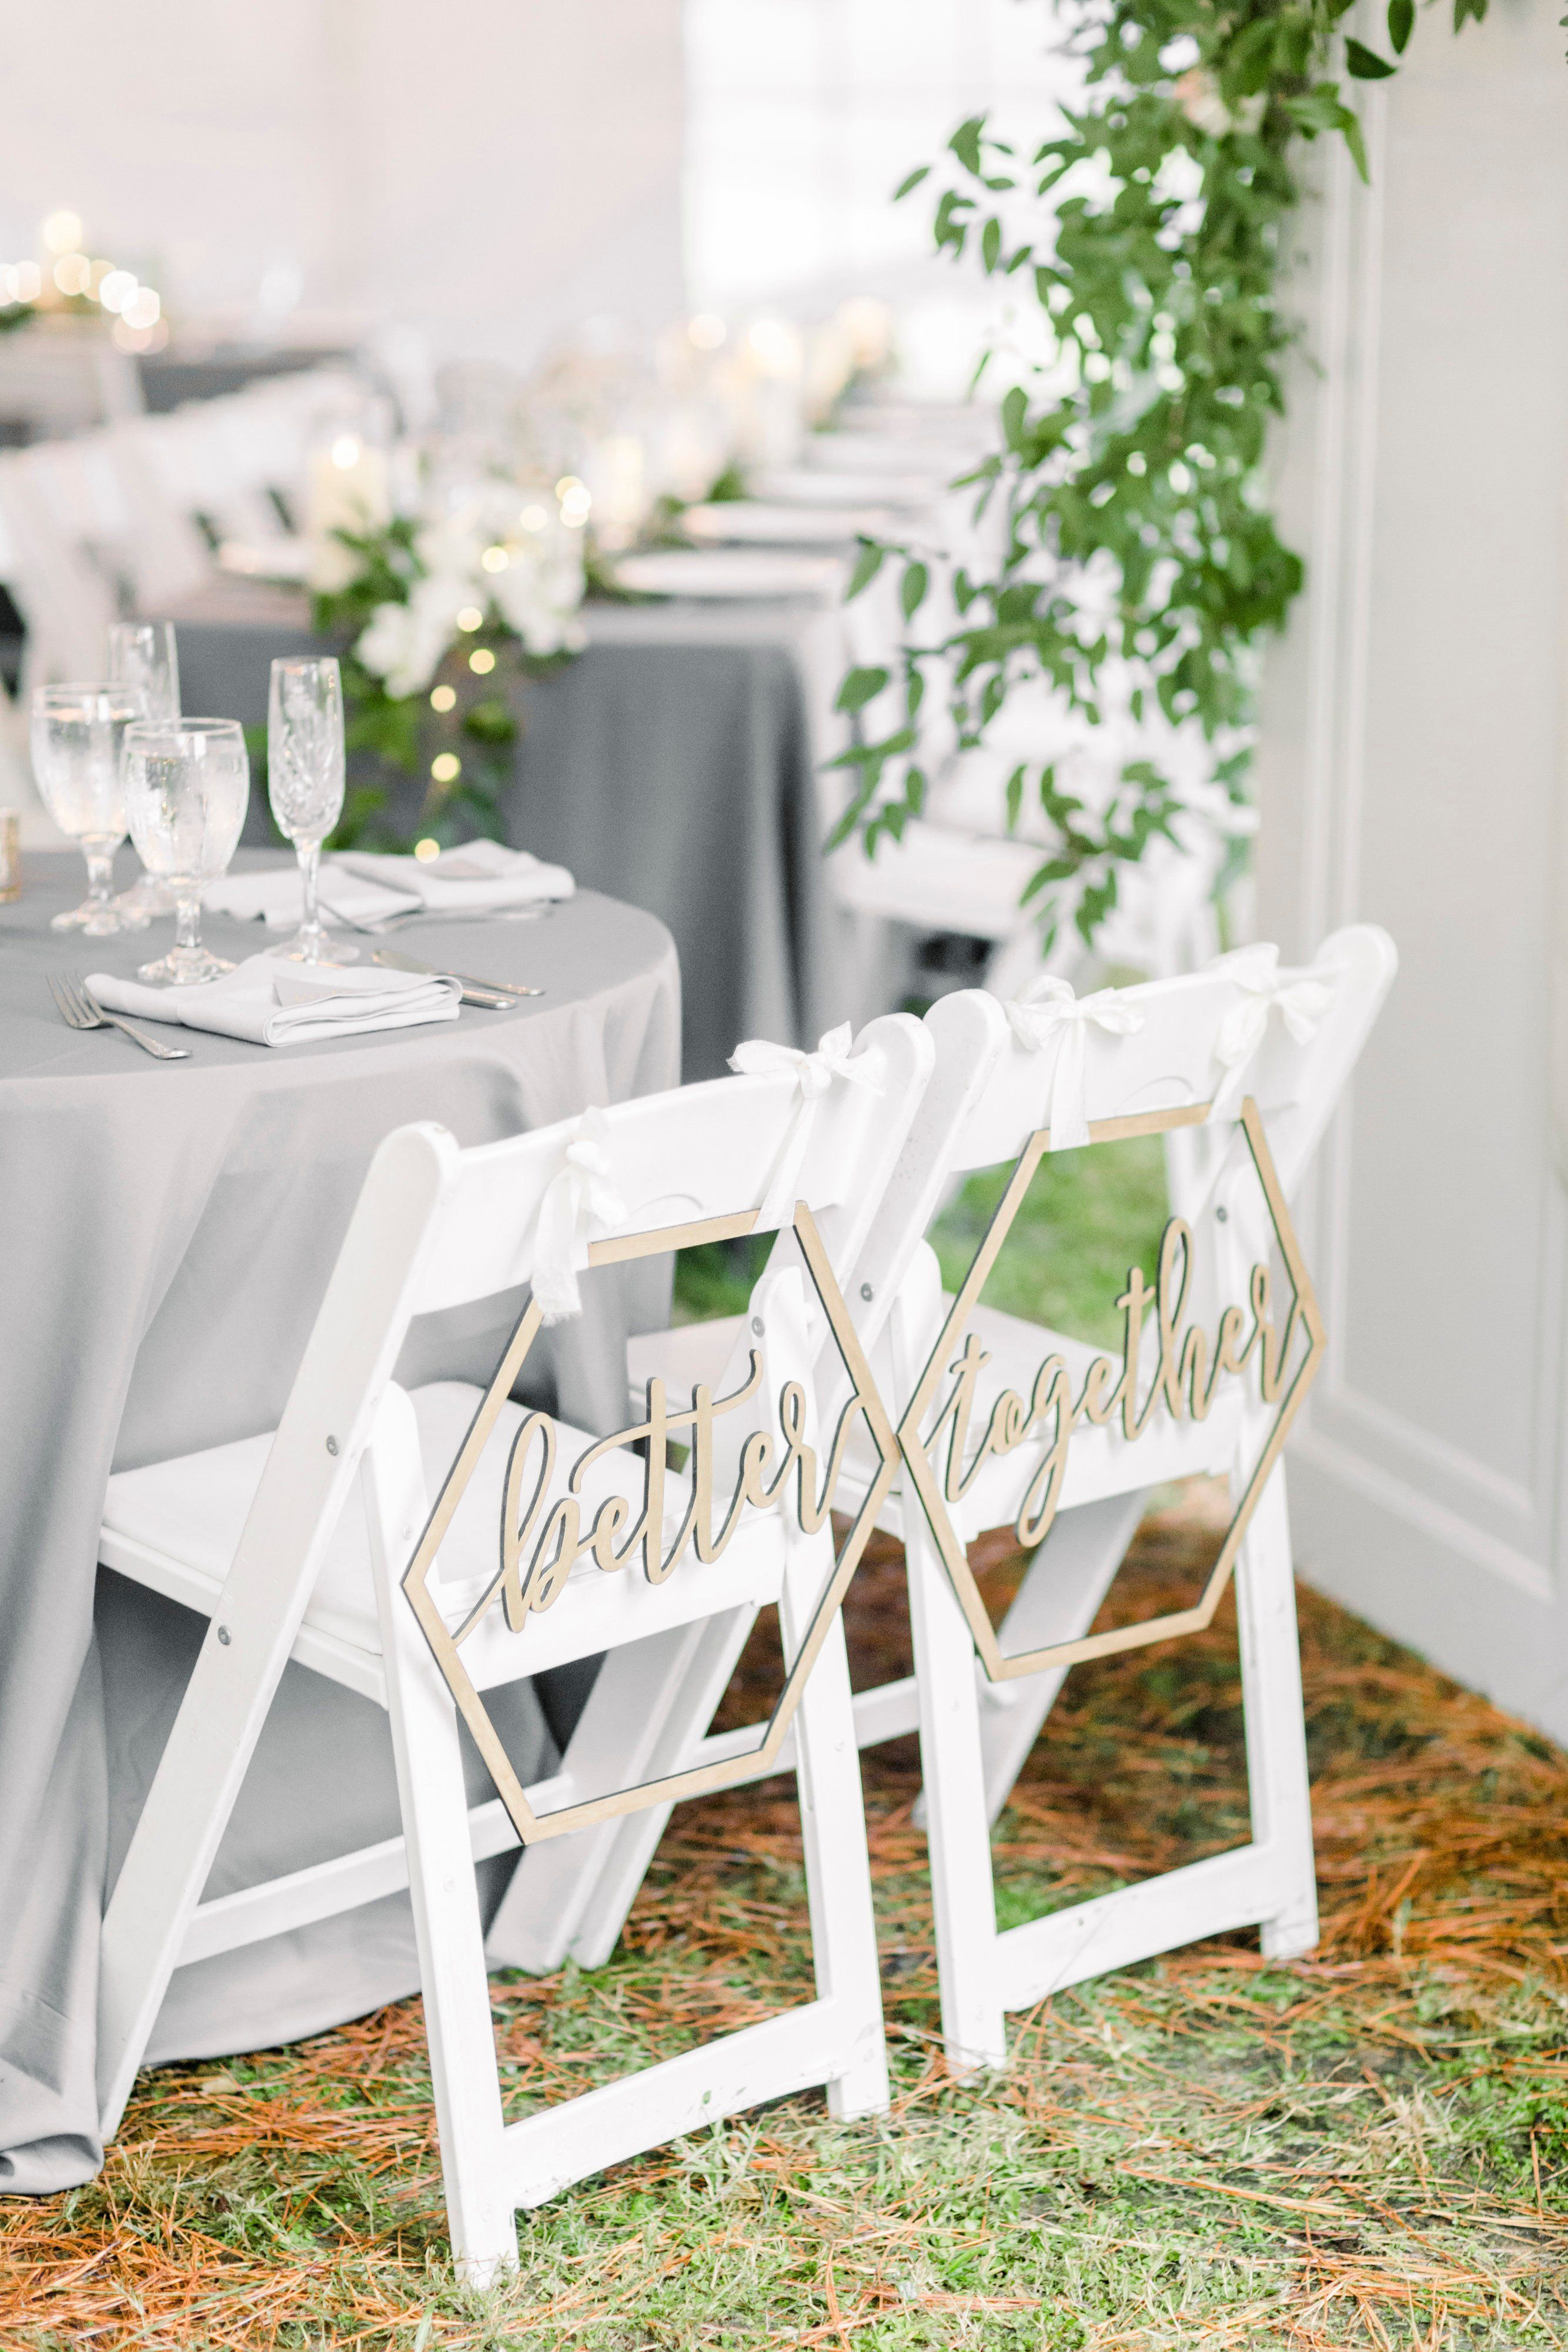 Prime Hexagon Wedding Chair Signs Geometric Better Together For Pdpeps Interior Chair Design Pdpepsorg